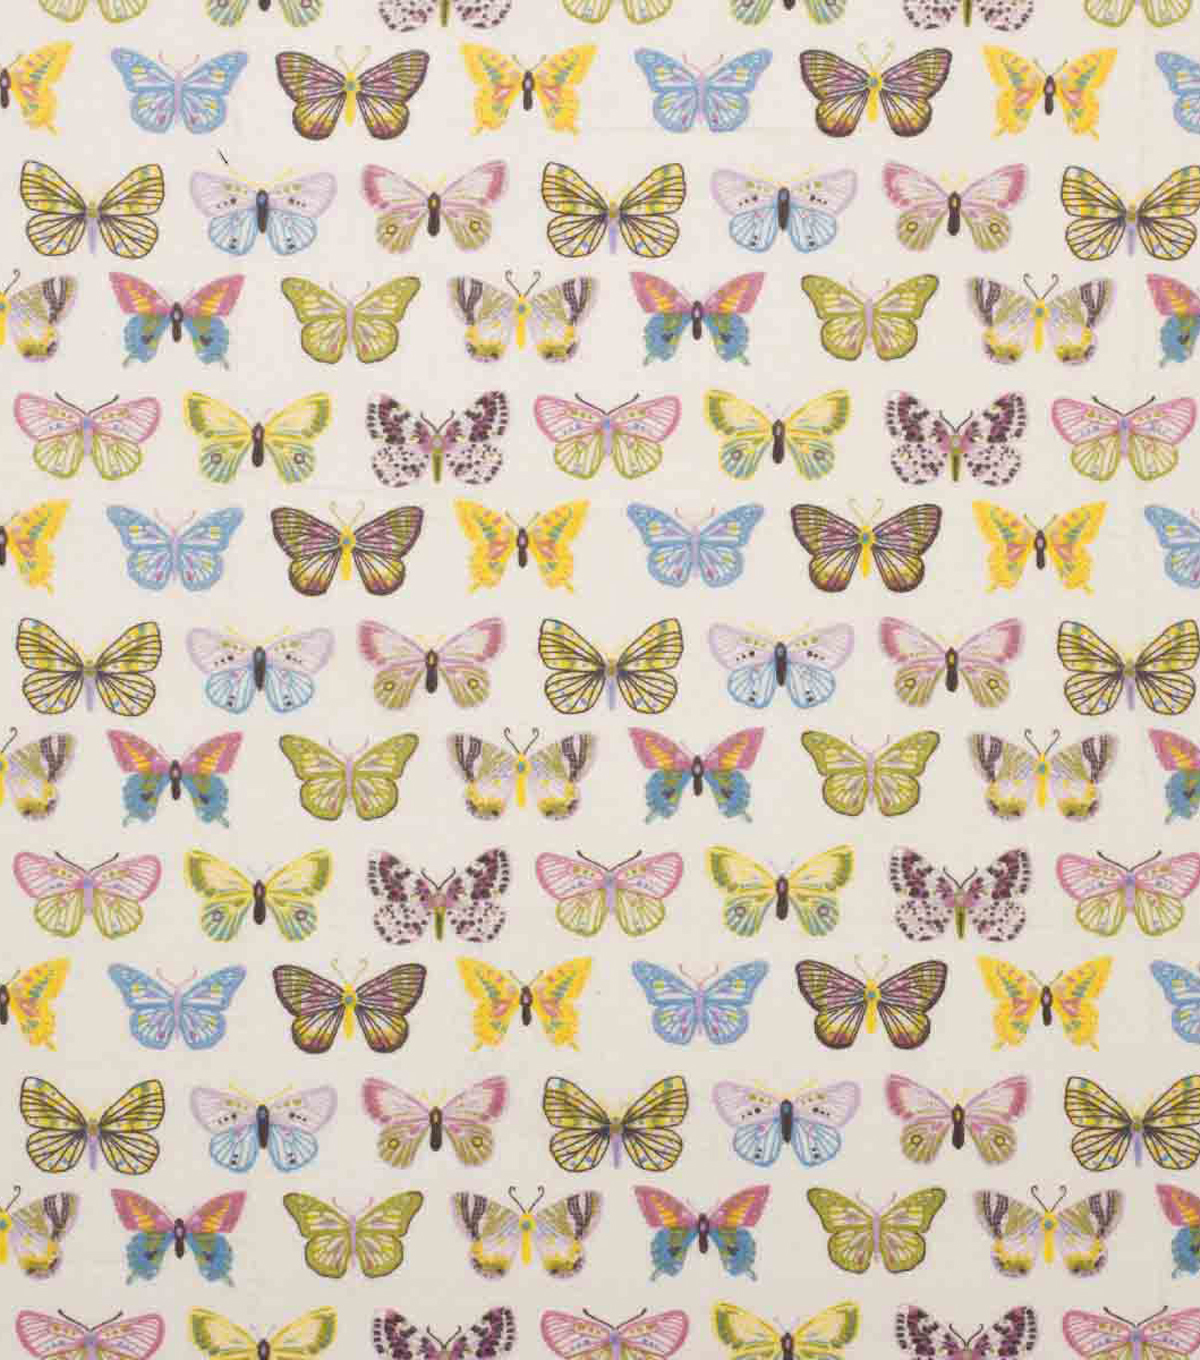 Super Snuggle Flannel Fabric-Butterflies in Line